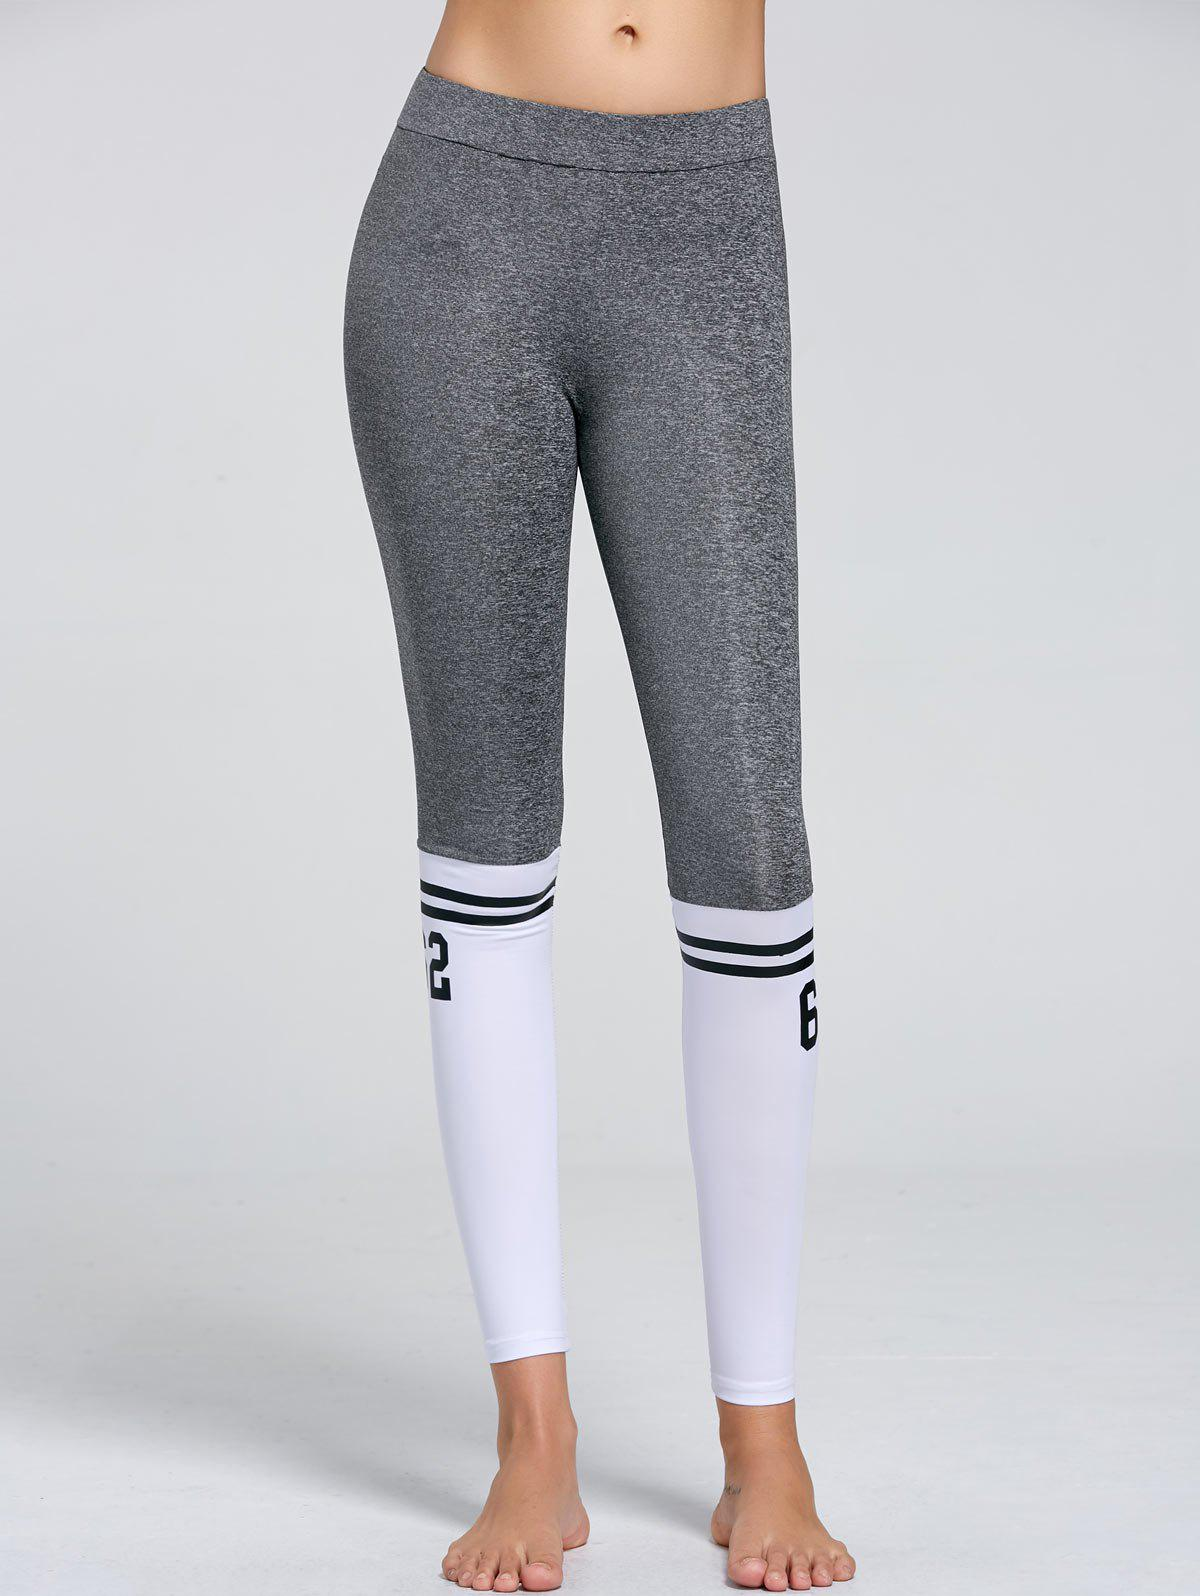 Numbers Contrast Yoga Tights - GRAY M